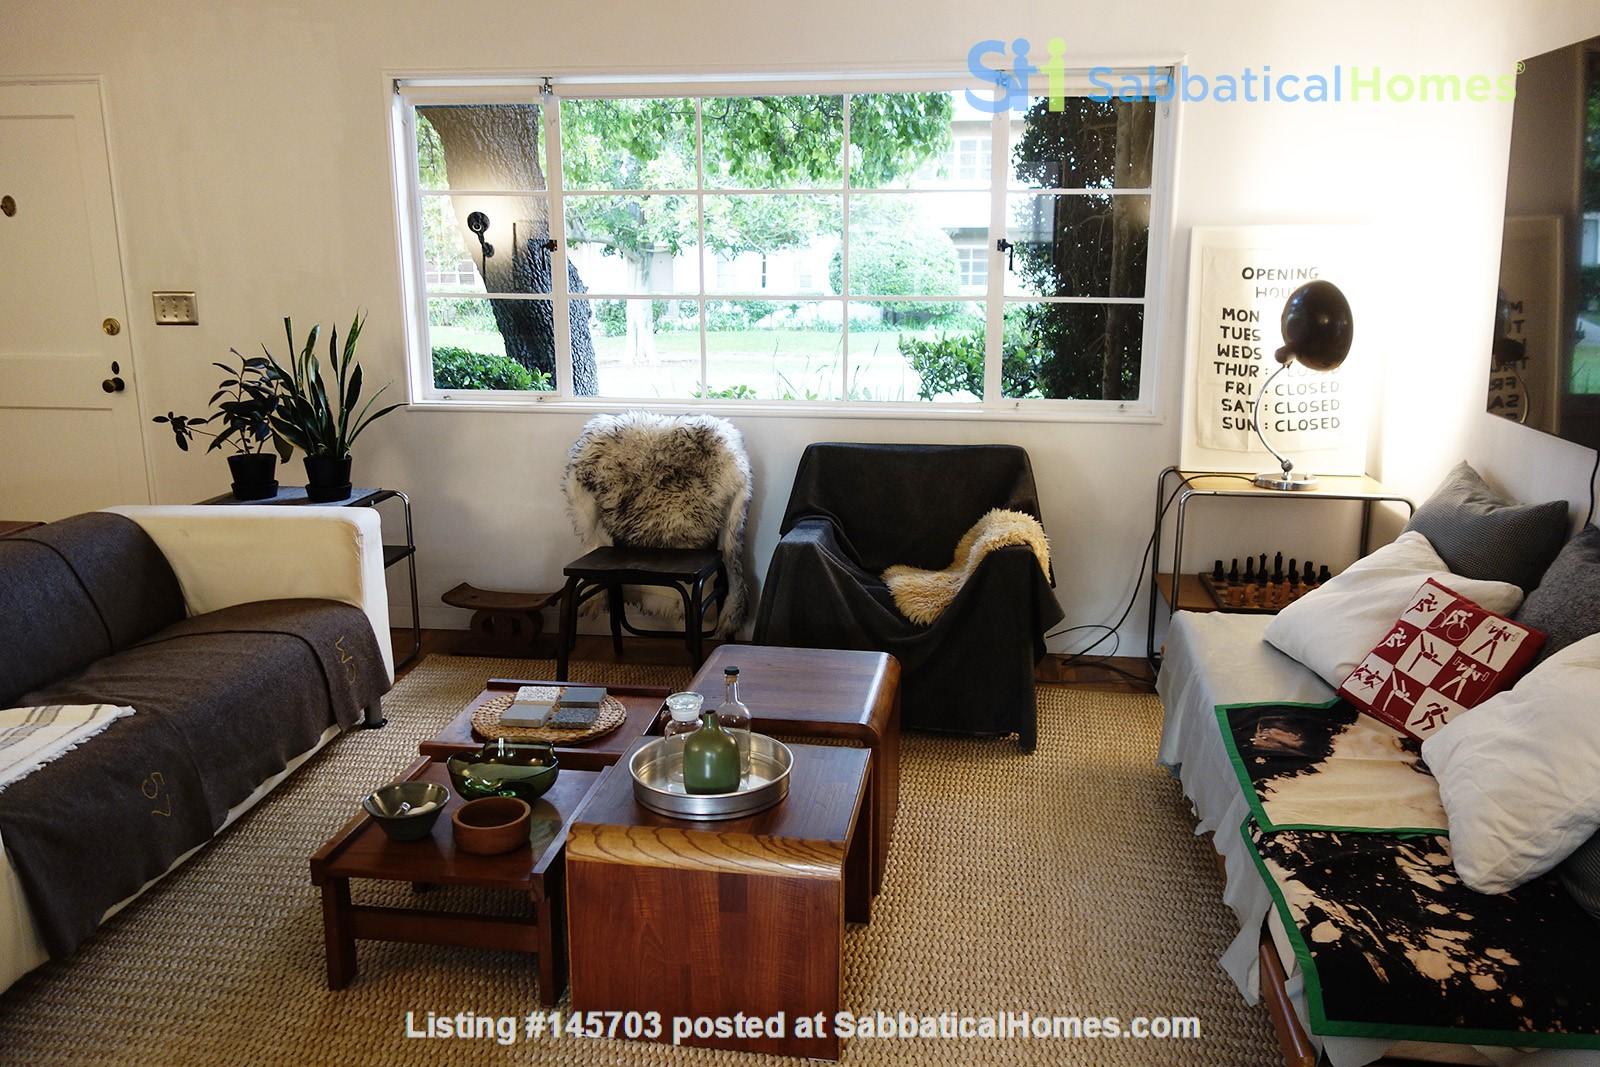 Light-filled 2BR townhouse with large patio in urban oasis in Los Angeles Home Rental in Los Angeles, California, United States 3